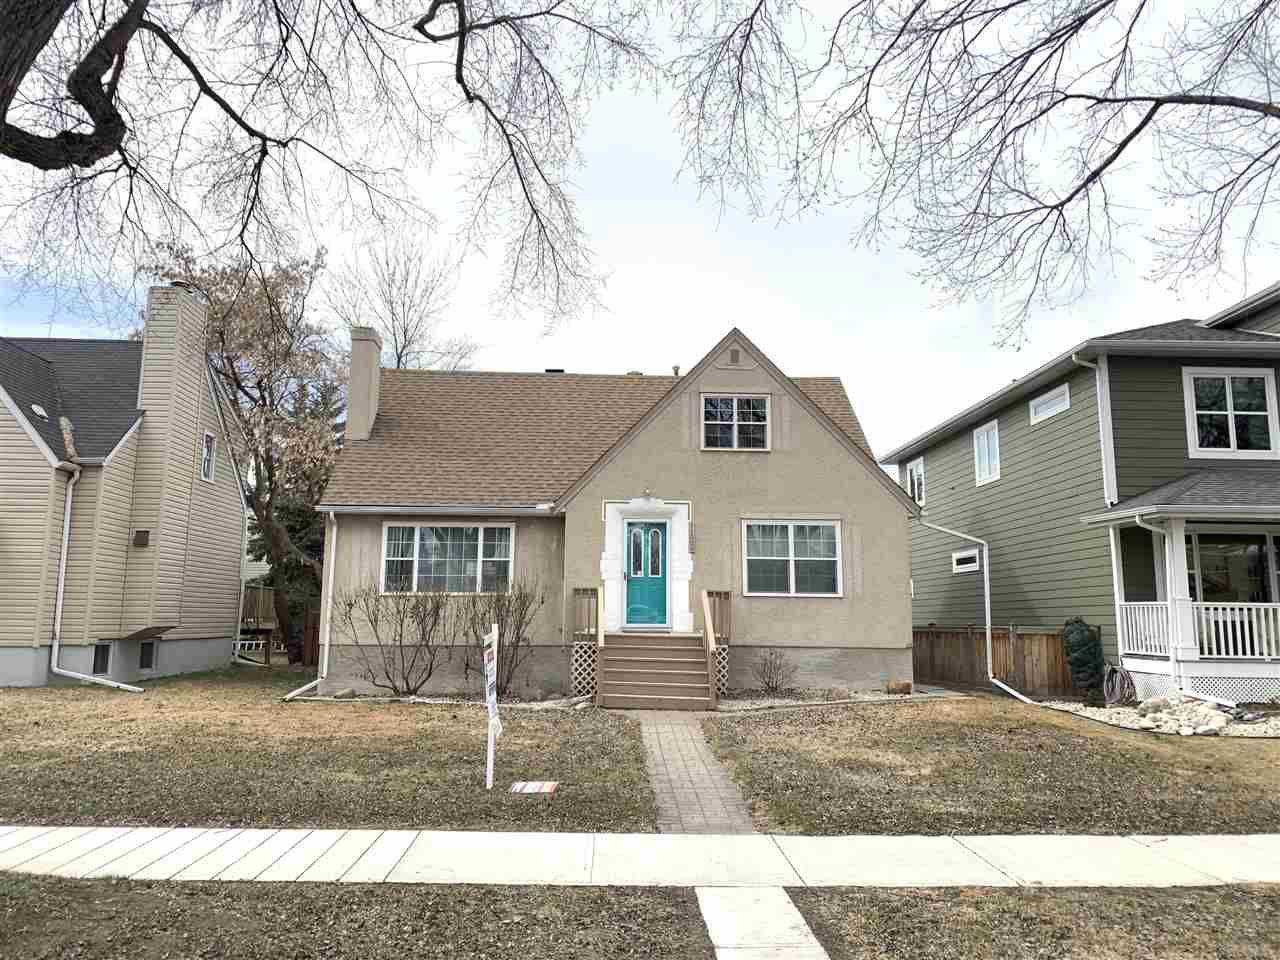 Main Photo: 11026 126 Street in Edmonton: Zone 07 House for sale : MLS®# E4144263